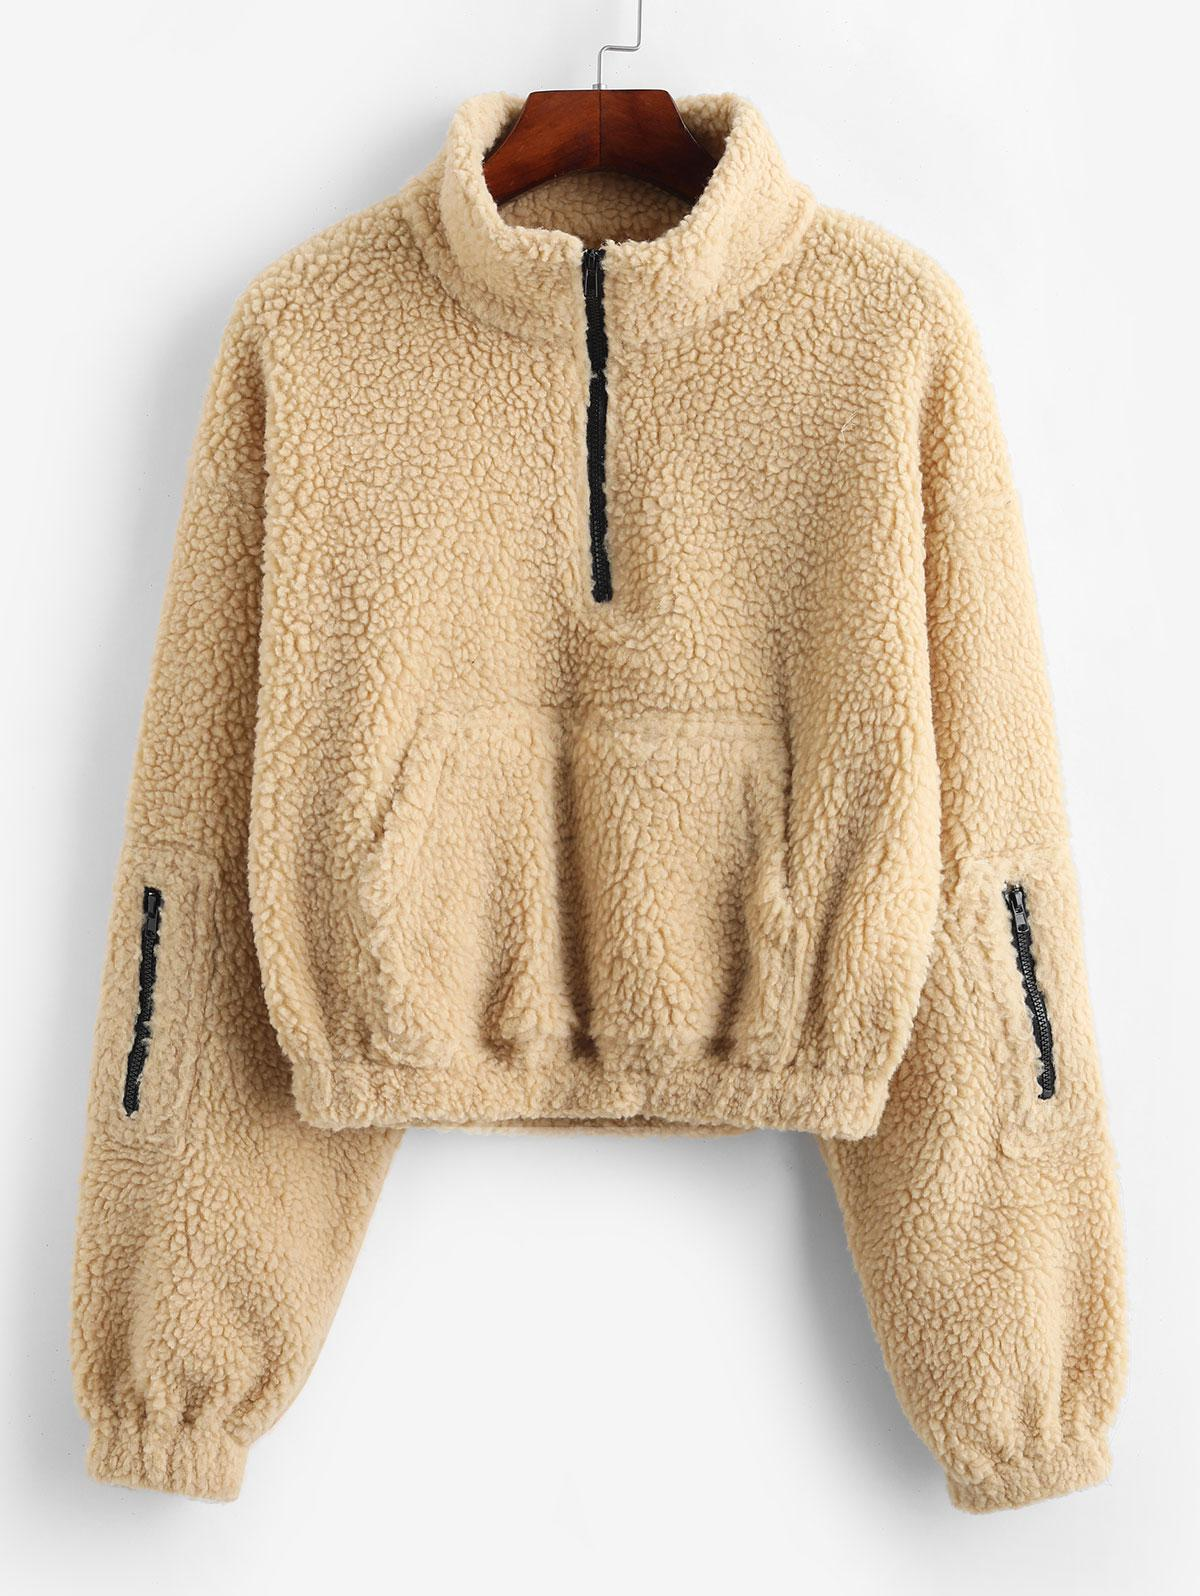 ZAFUL Zip High Neck Kangaroo Pocket Teddy Sweatshirt, Light khaki